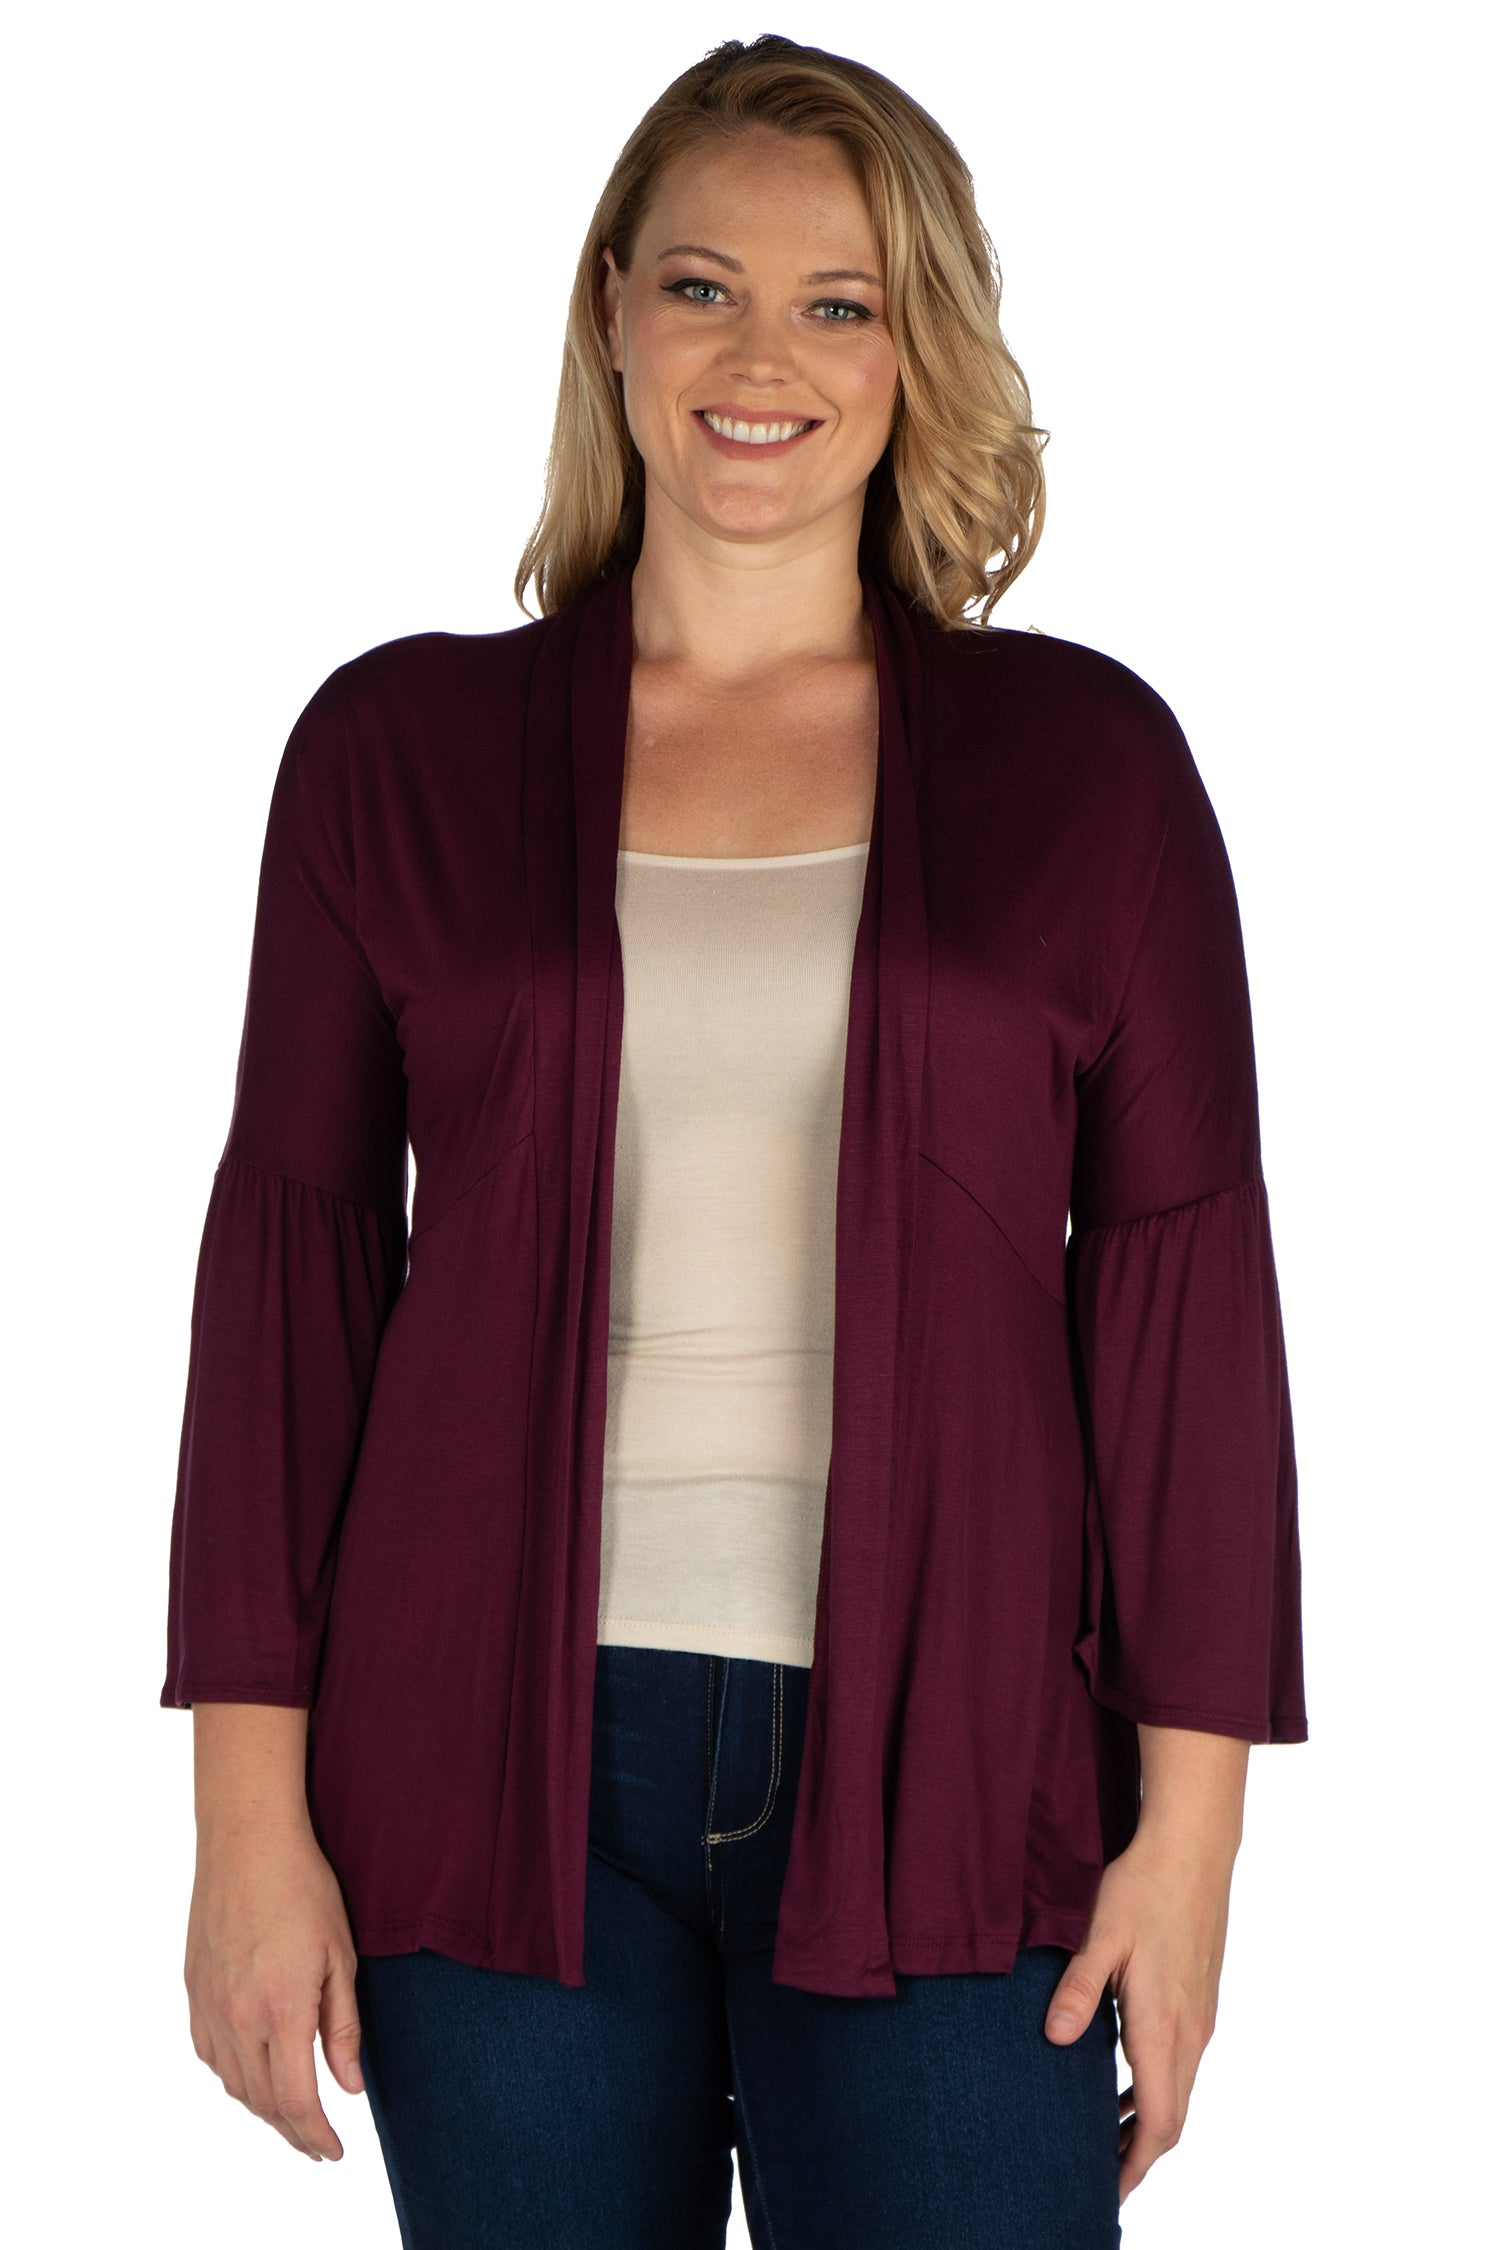 24seven Comfort Apparel Bell Sleeve Flared Open Front Plus Size Cardigan-SHRUGS-24Seven Comfort Apparel-BLACK-1X-24/7 Comfort Apparel